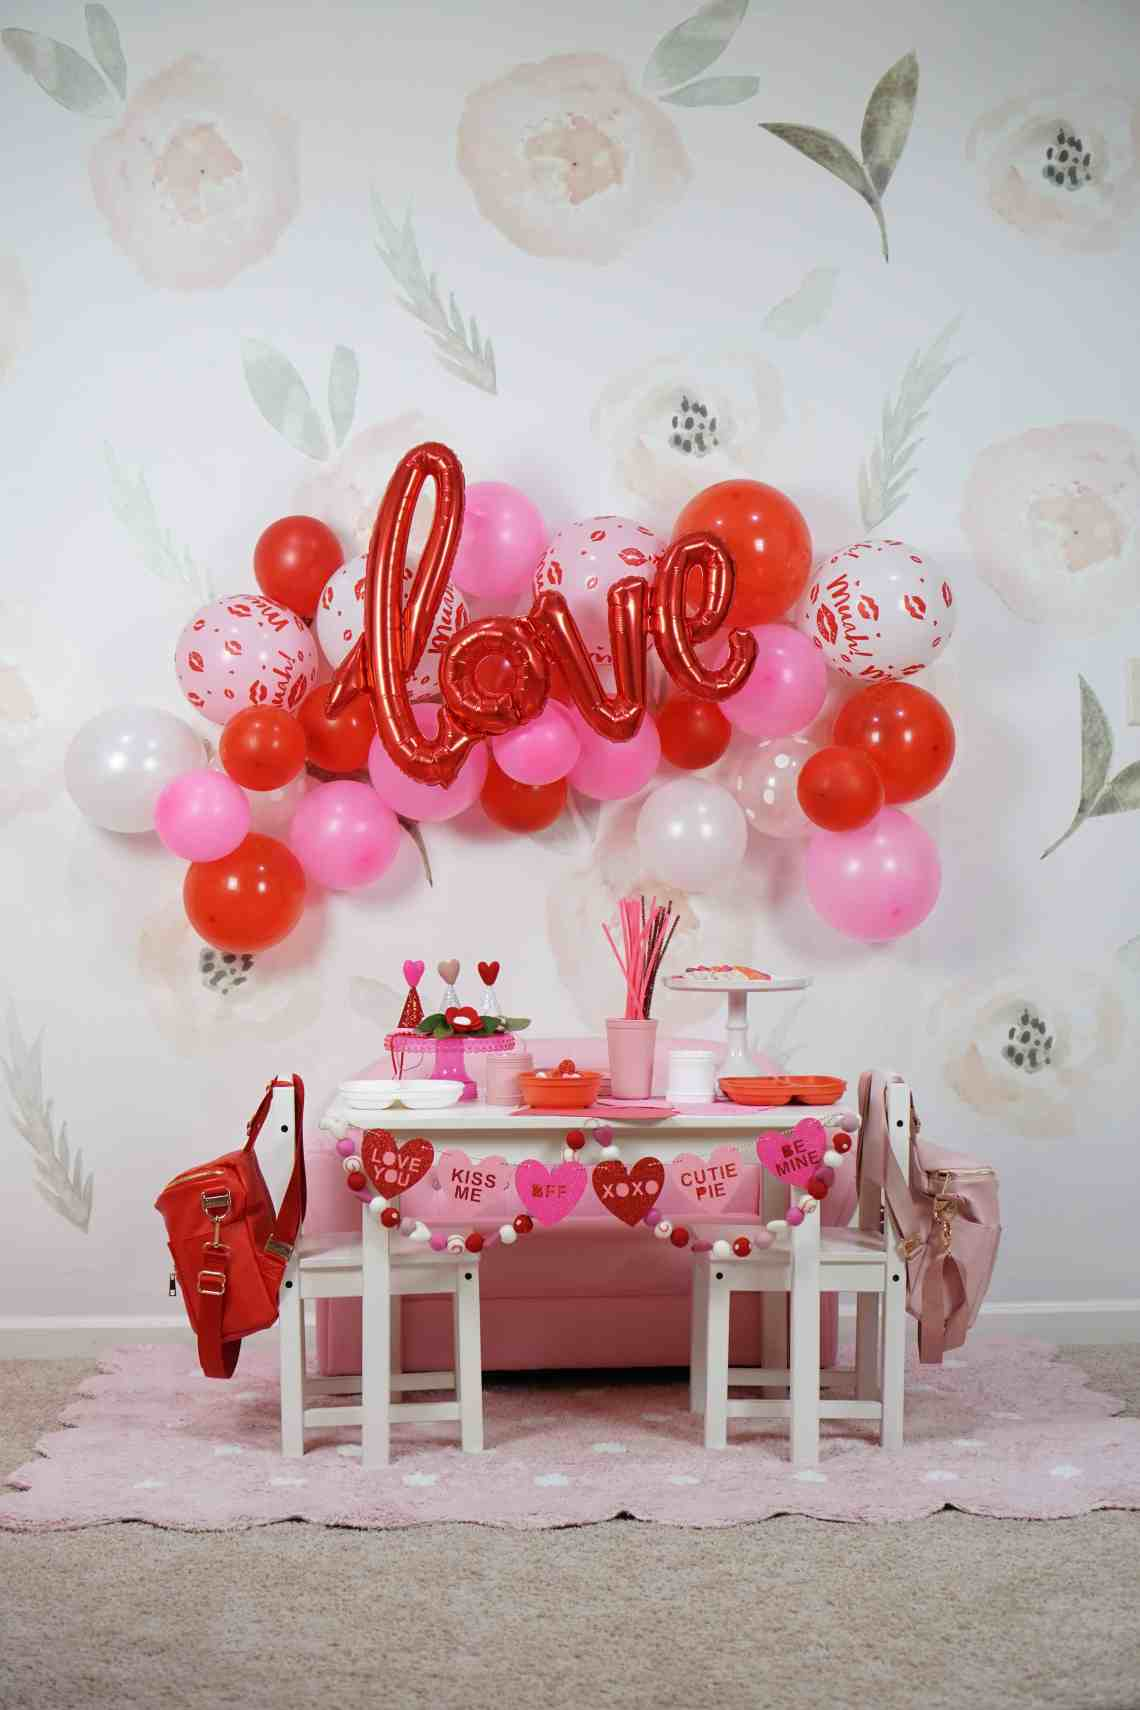 pink and red balloons and table scape with toddlers